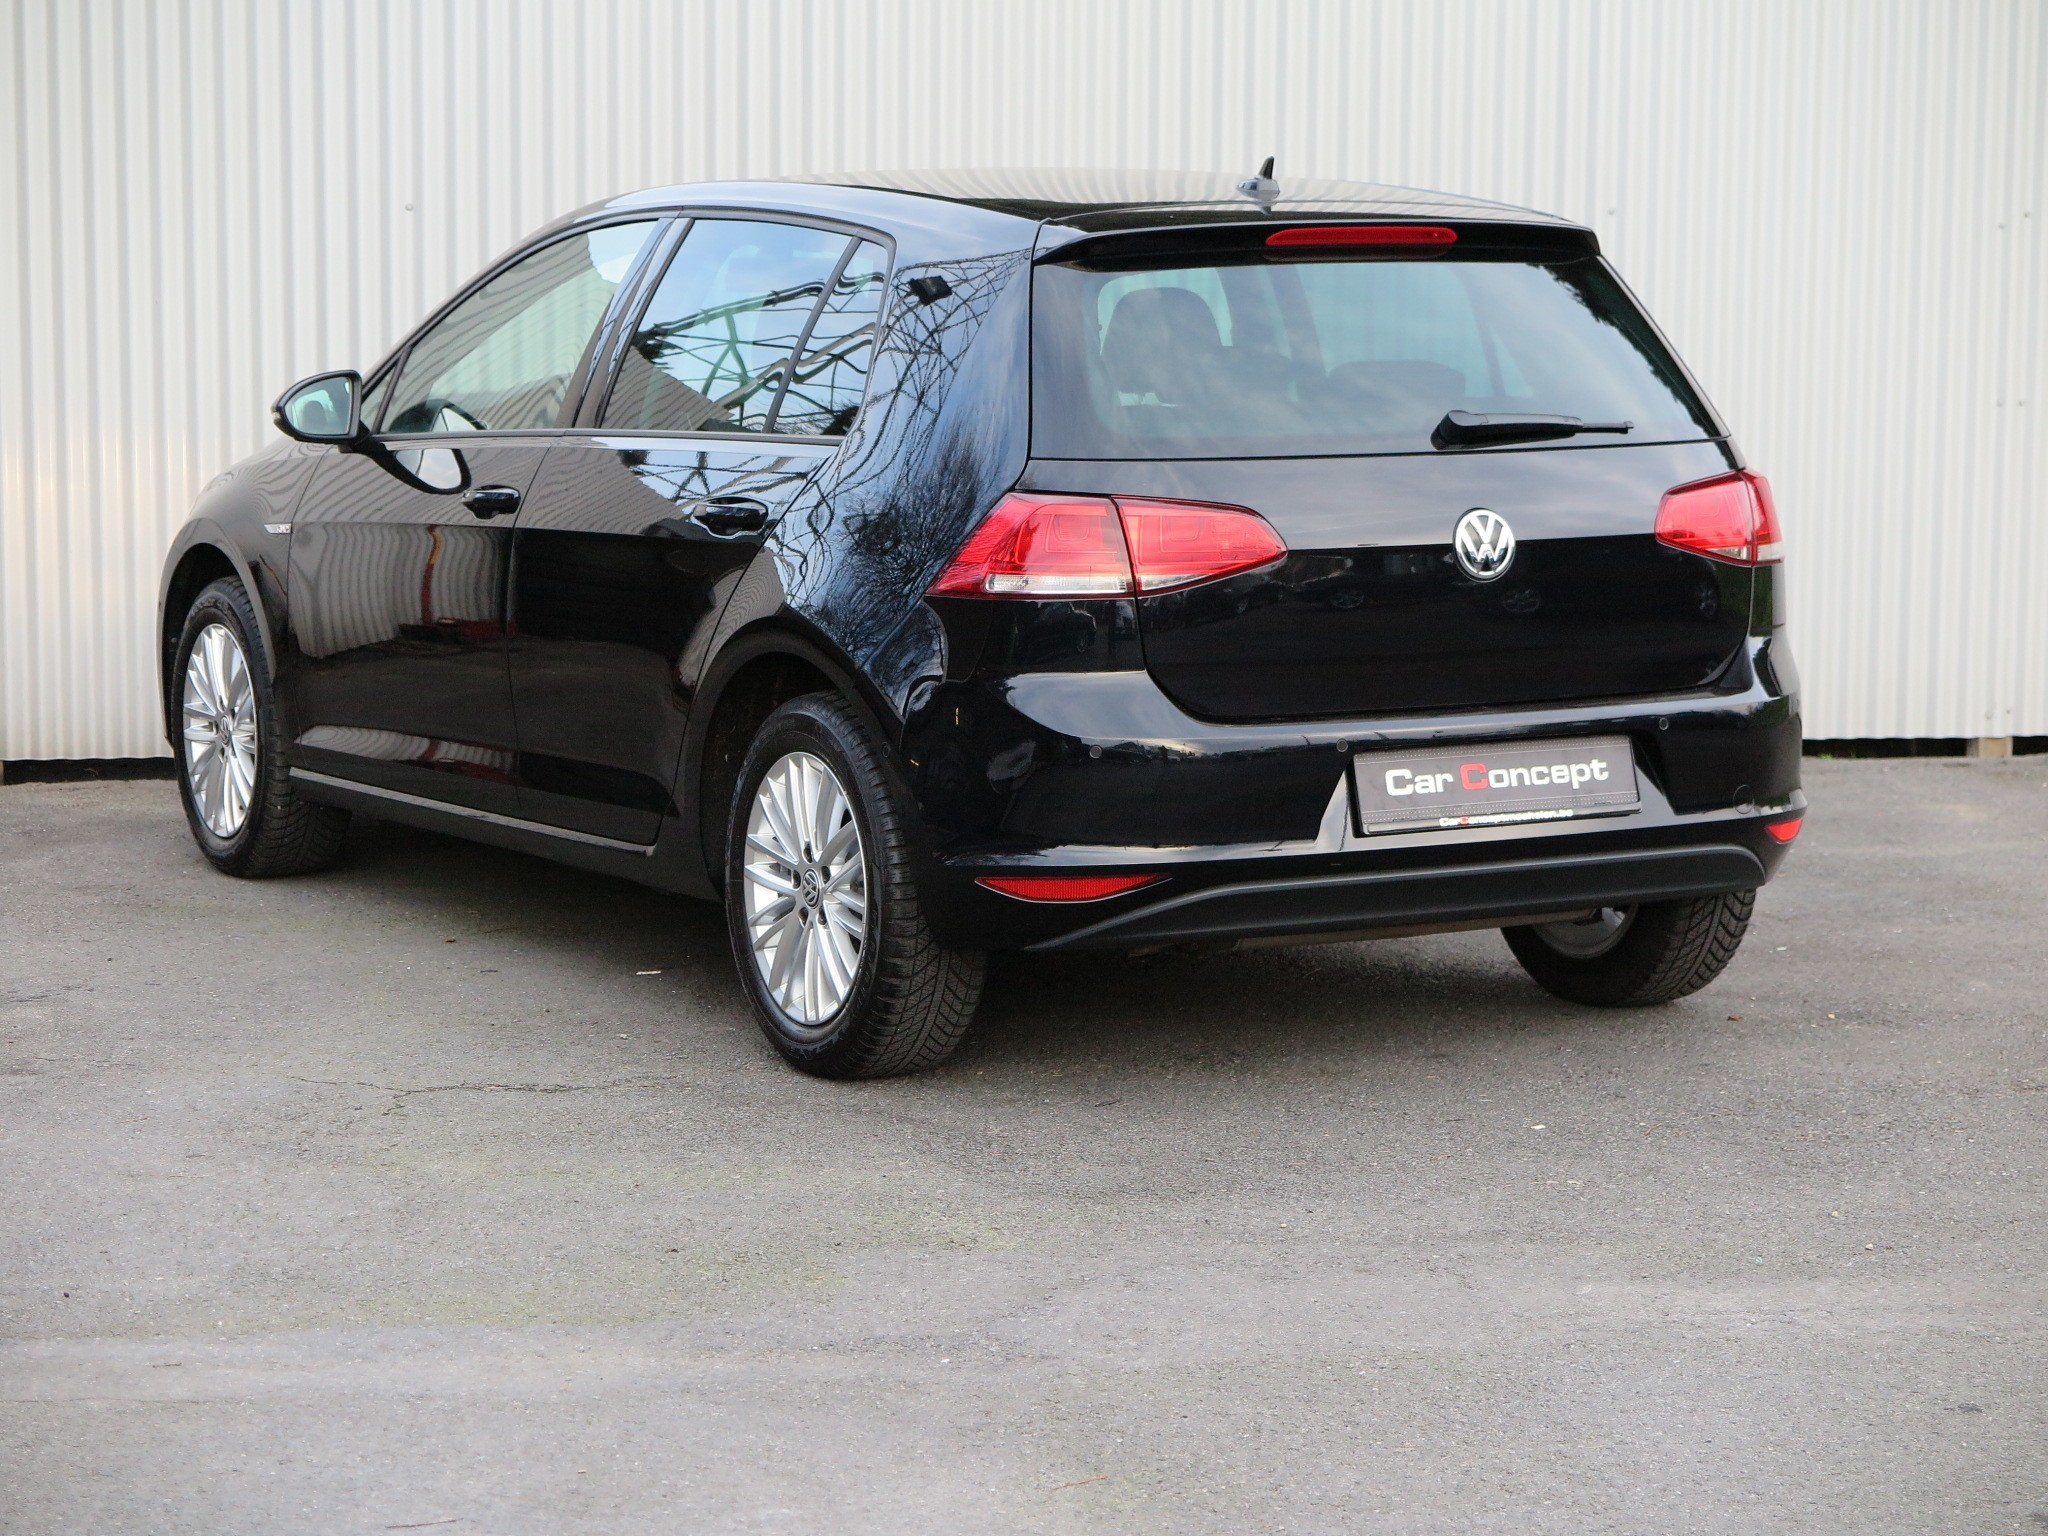 vw golf vii 1 2 tsi cup carconcept mechelen. Black Bedroom Furniture Sets. Home Design Ideas